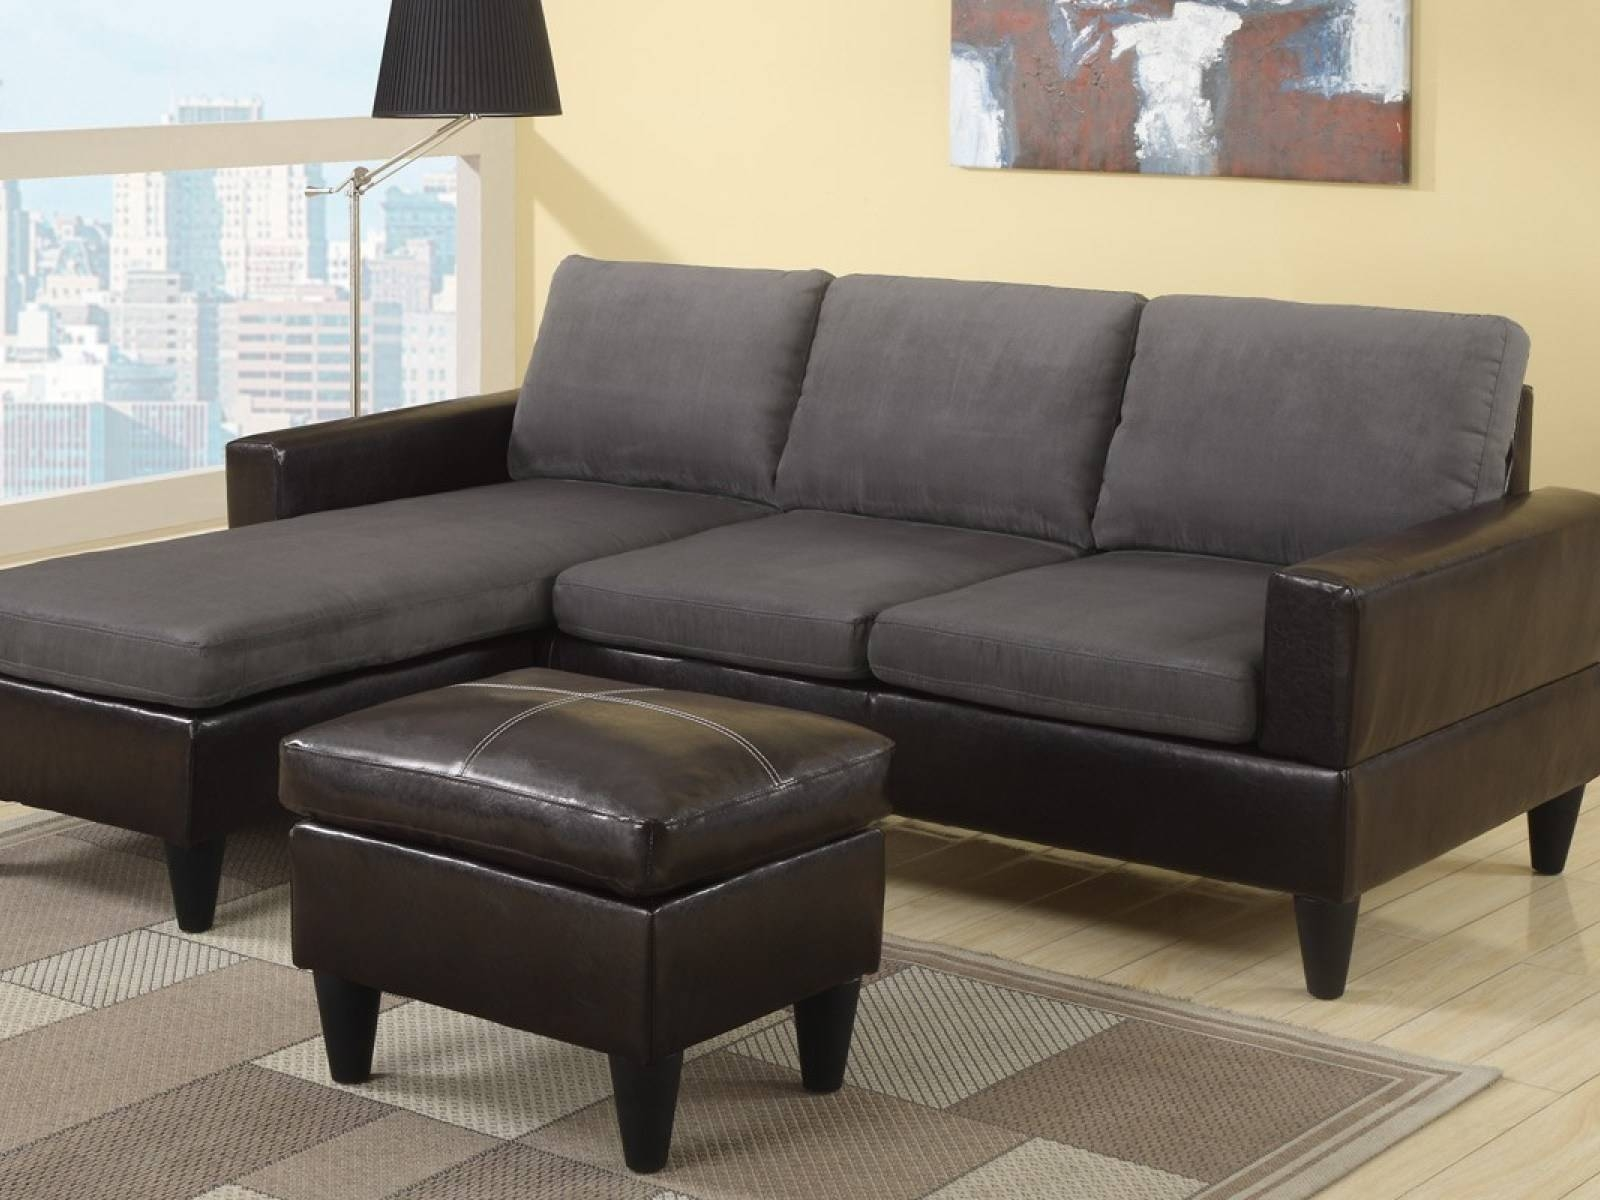 ☆▻ Sofa : Lovely Small Modern Sectional Sofa Charismatic throughout Mini Sectional Sofas (Image 30 of 30)